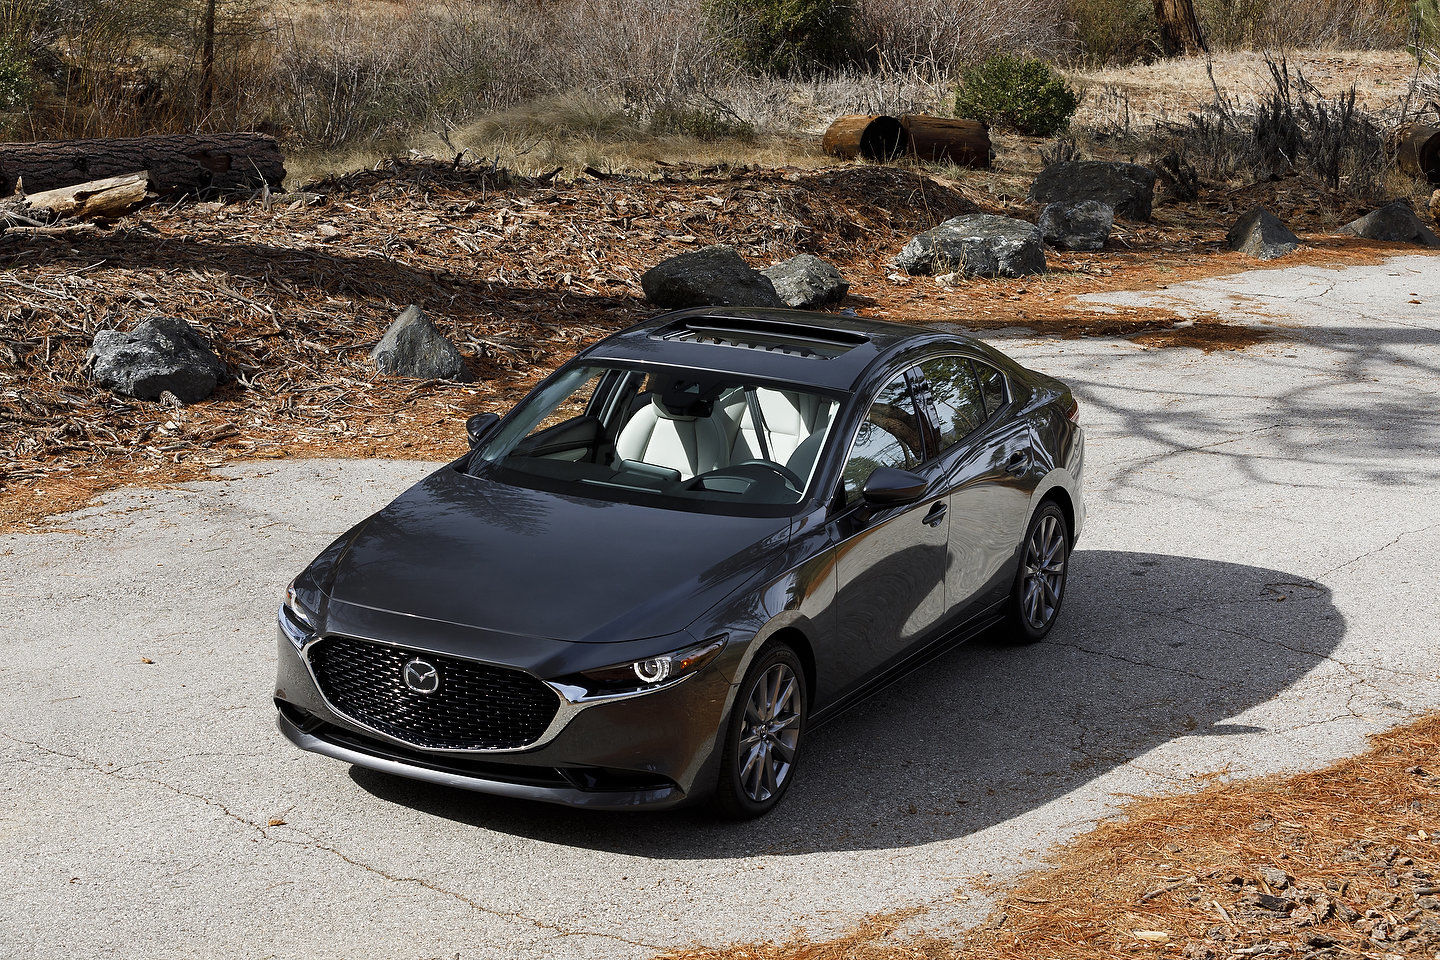 2019 Mazda3 vs Honda Civic 2019: Two rivals who have a lot to offer